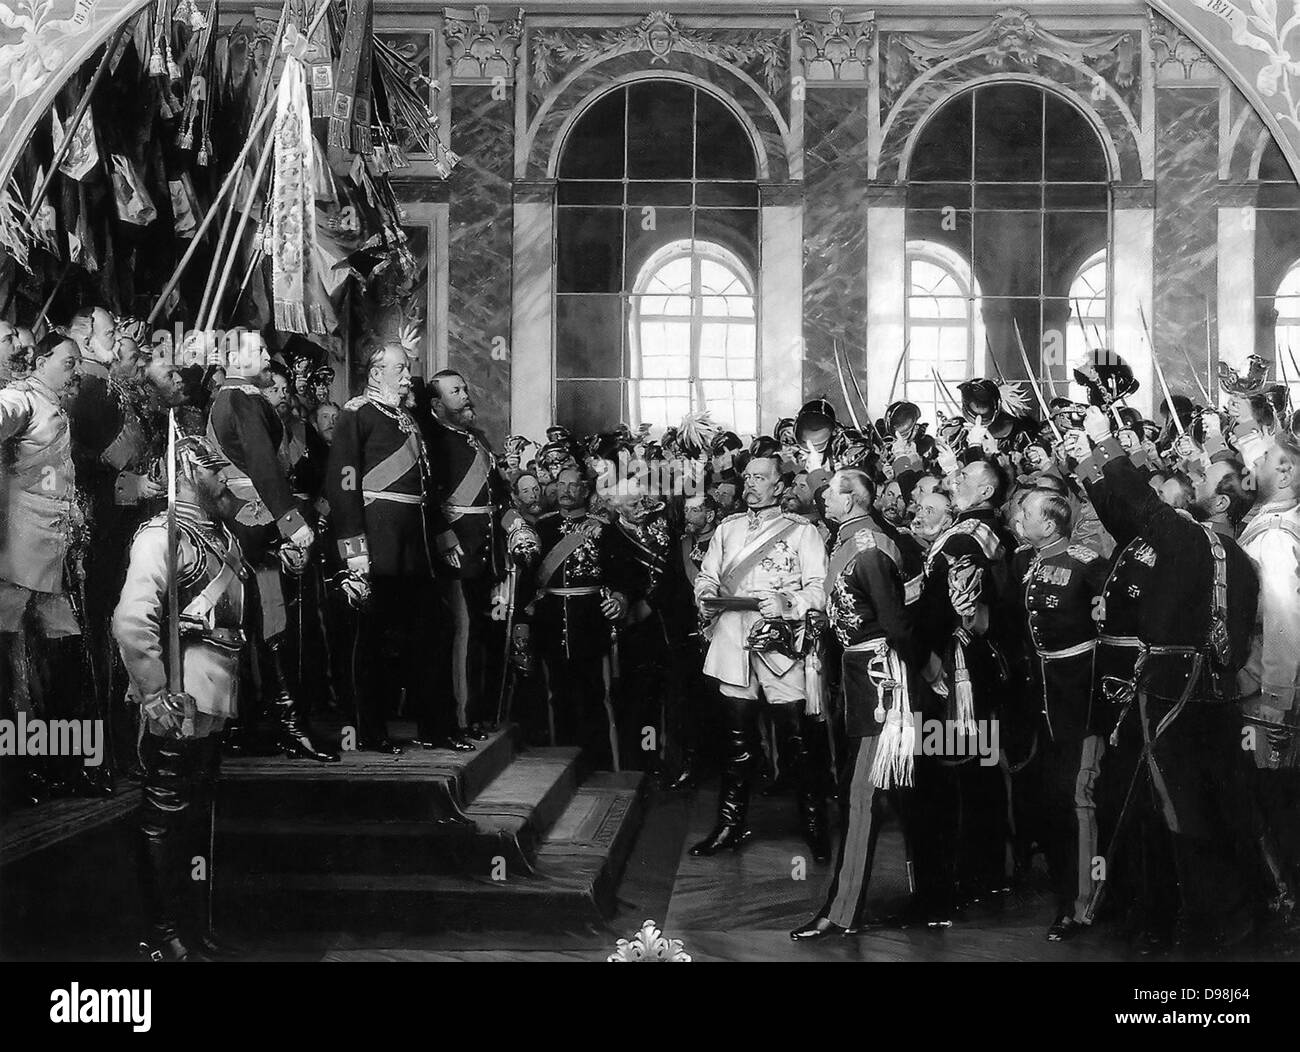 Anton von Werner's depiction of William I's proclamation as Emperor; In 1871, following Prussia's victories, - Stock Image